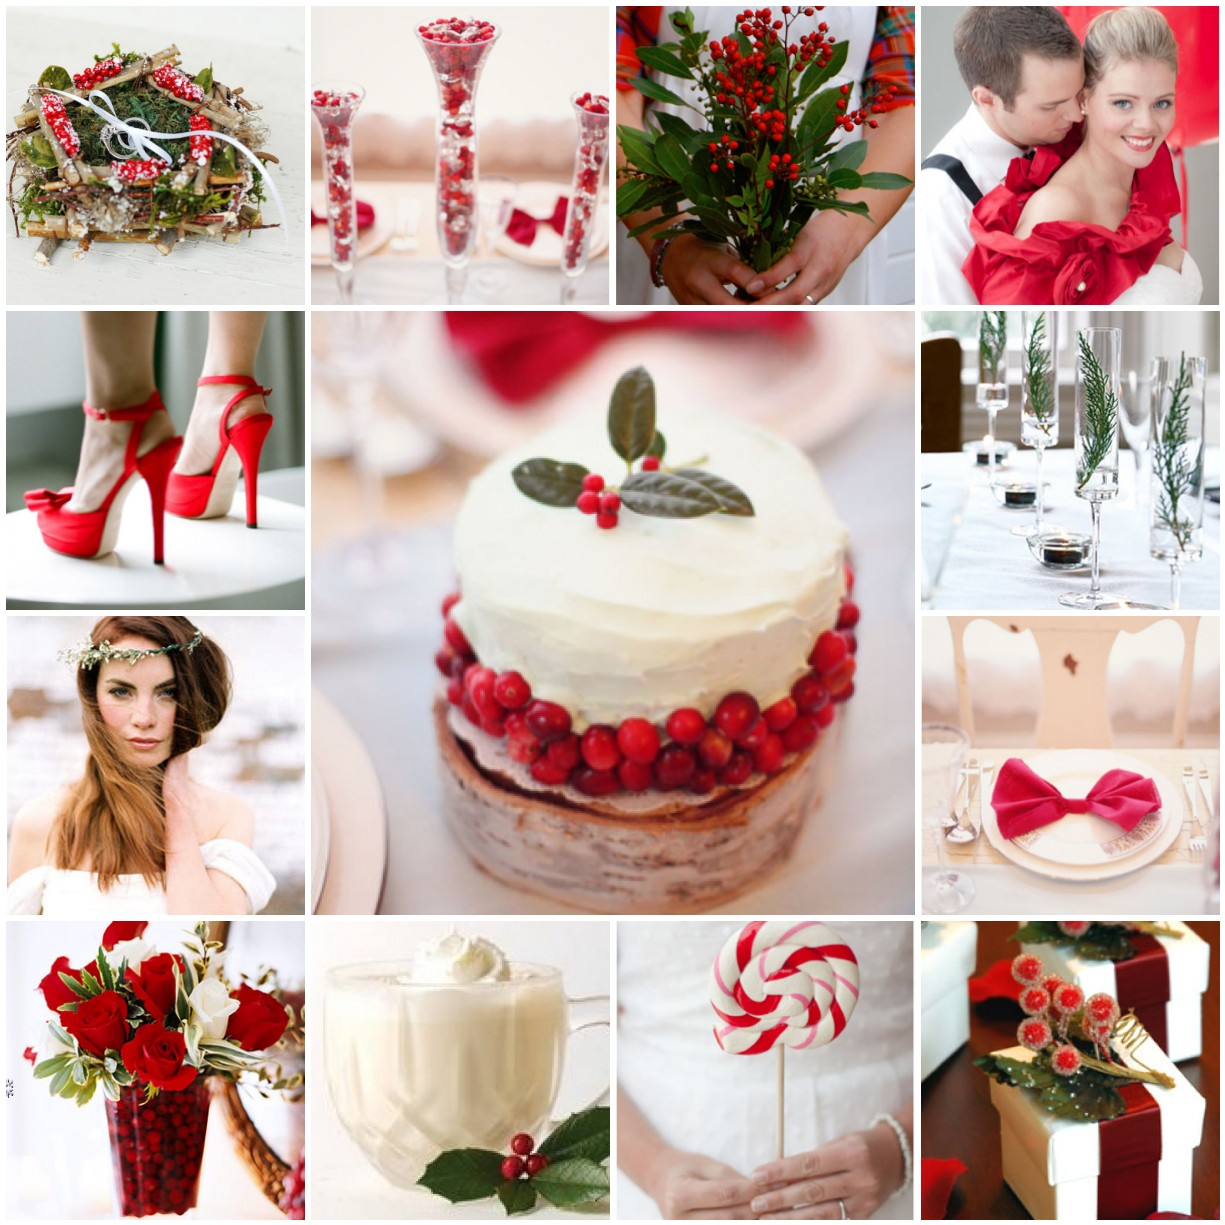 Christmas Wedding: Cranberries And Holly – A Christmas Wedding